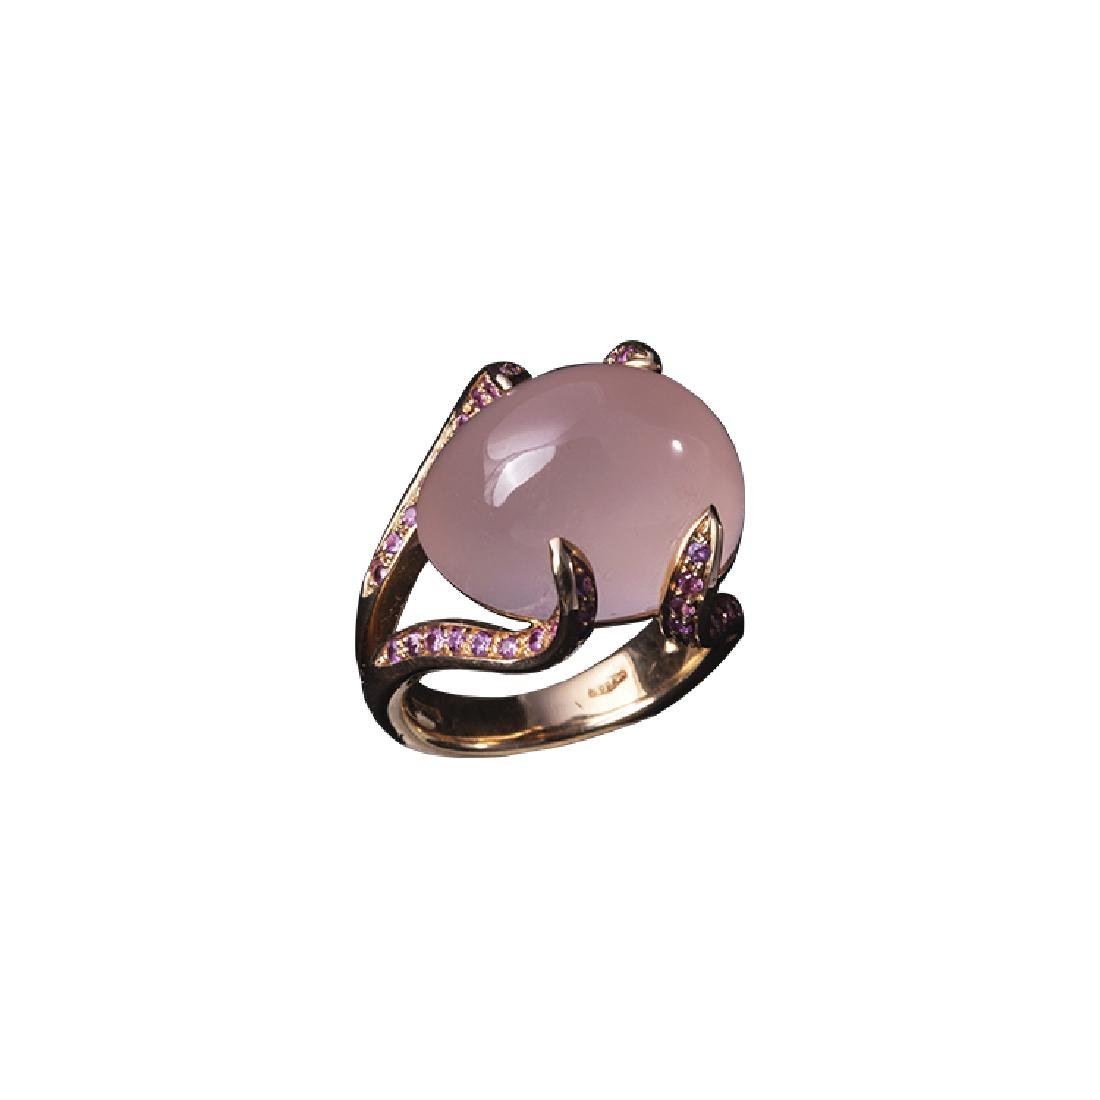 Ring with pink quartz and rubies